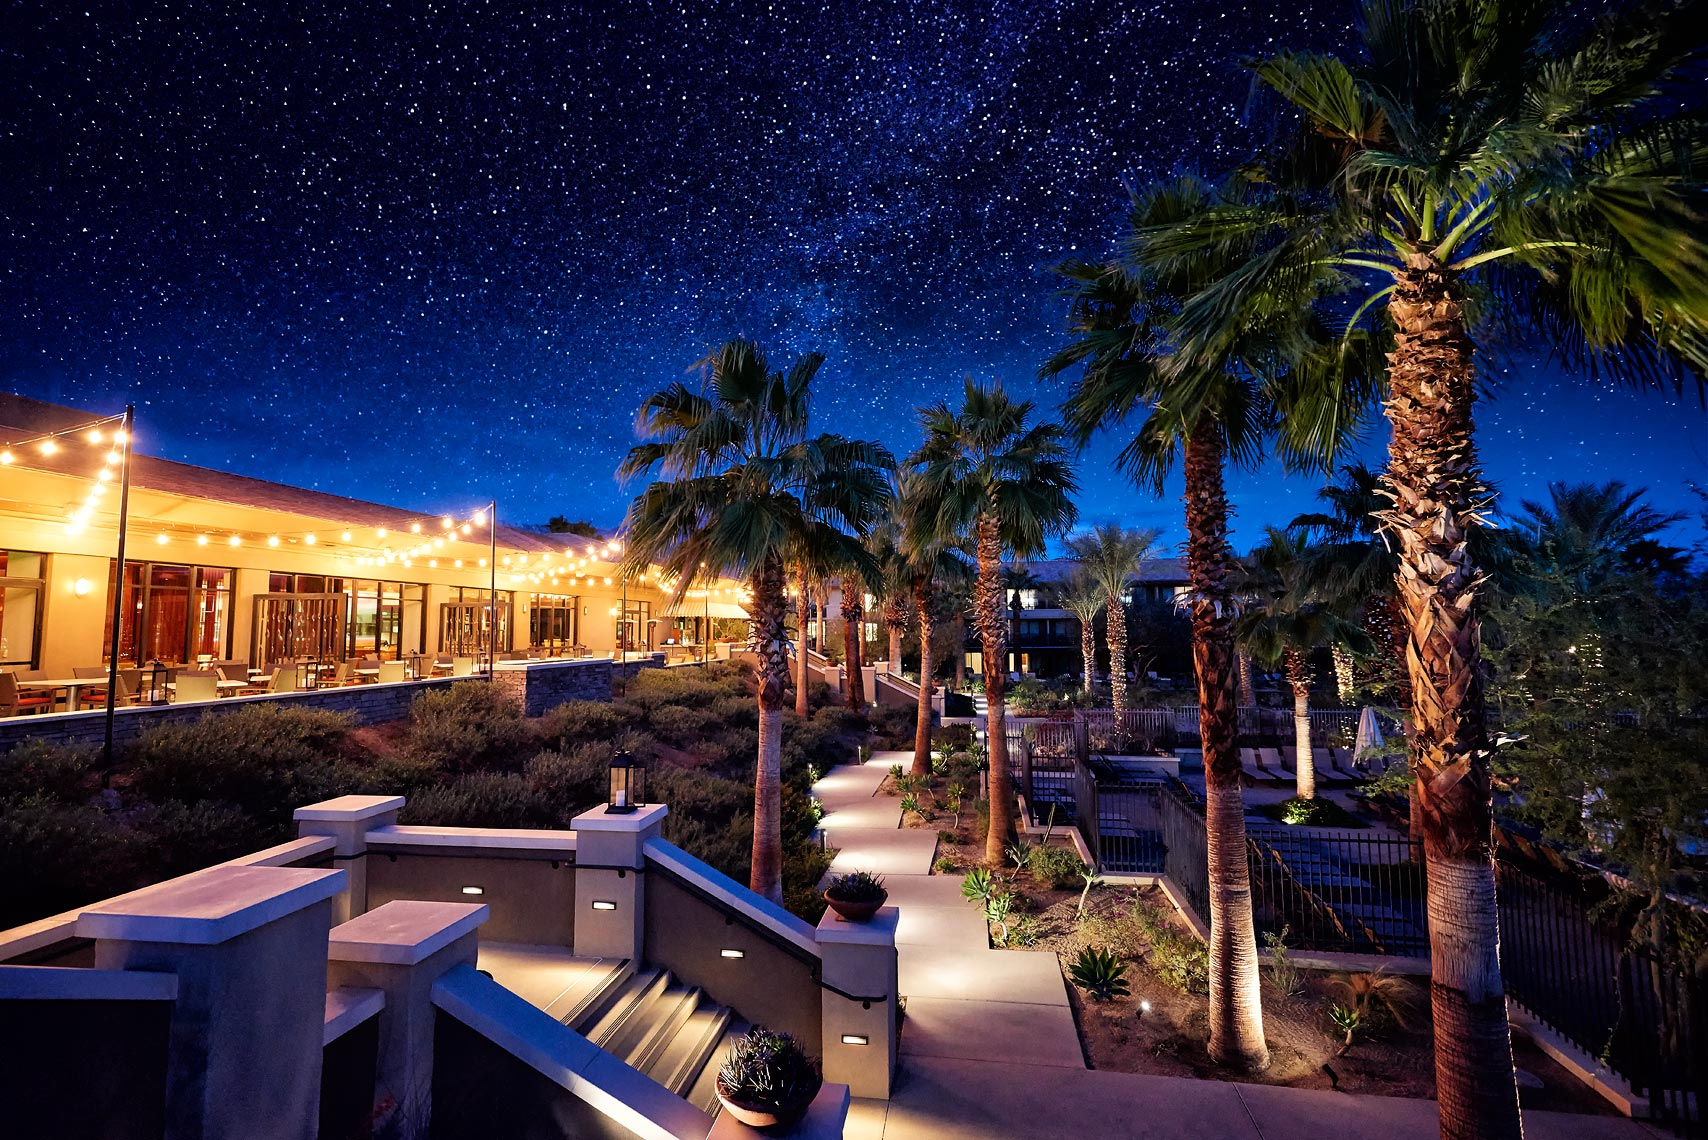 Rancho-Mirage-Ritz-Stars-1